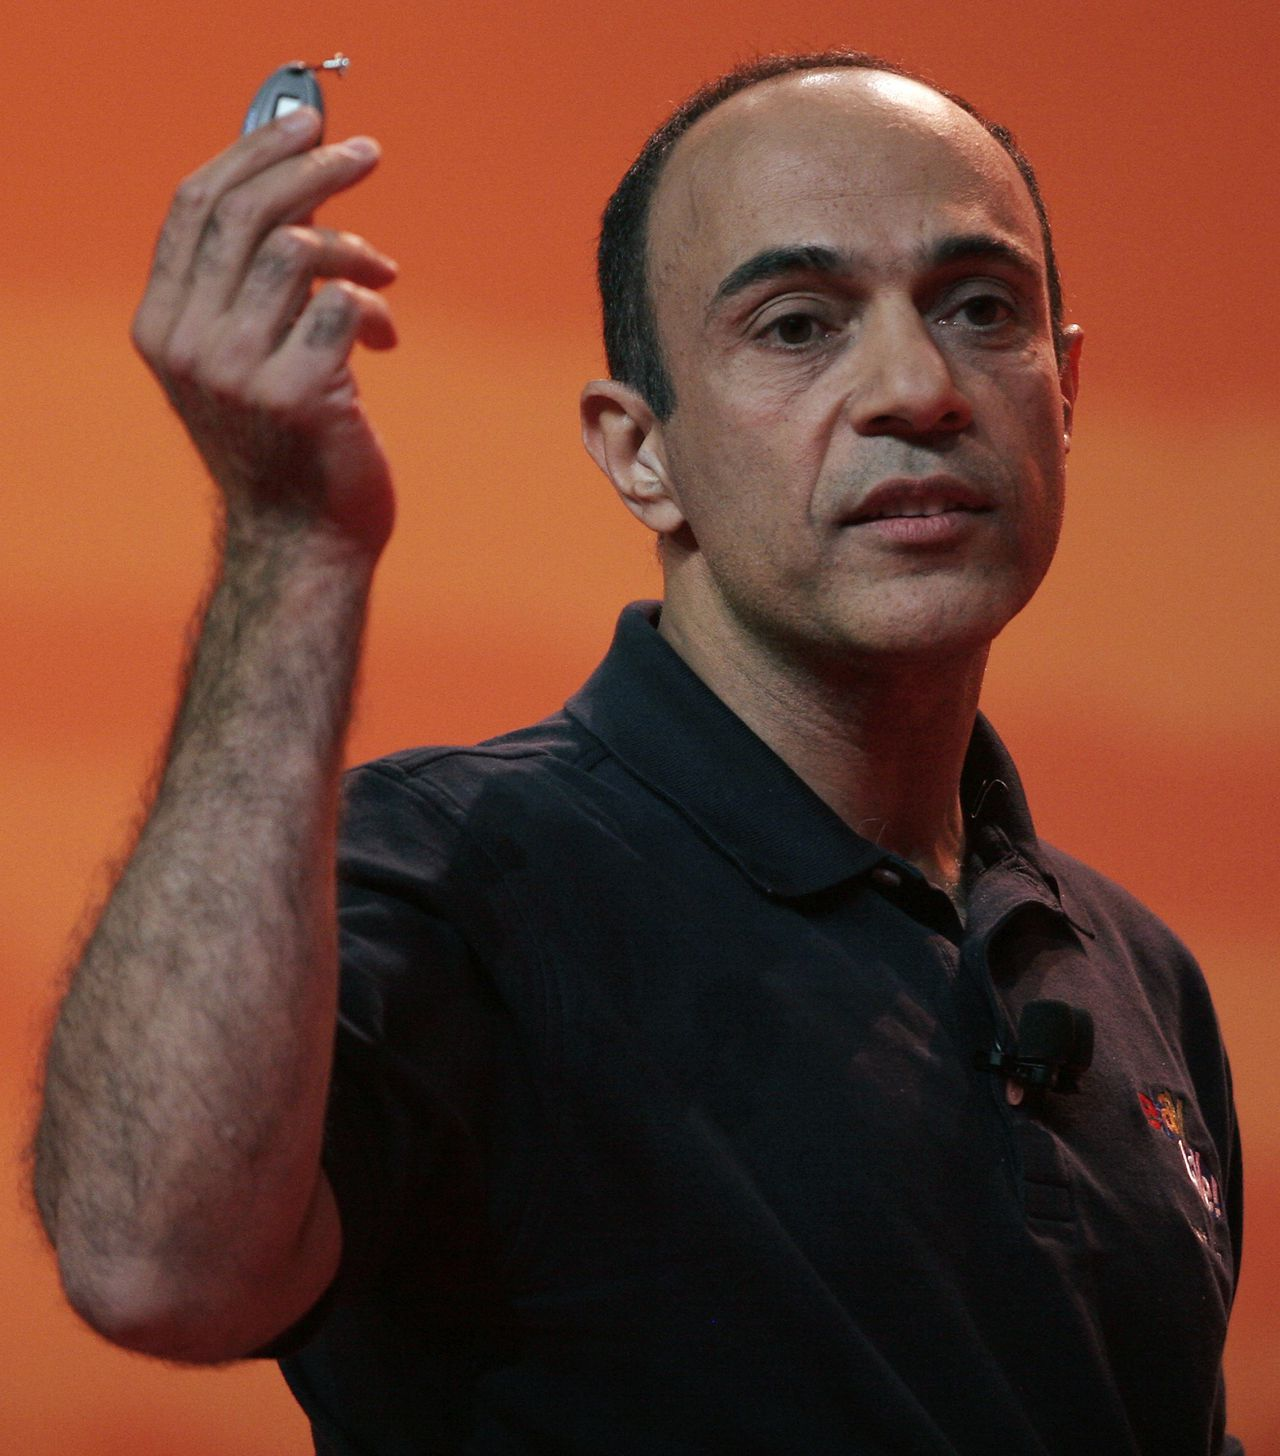 Rajiv Dutta Foto Reuters President of PayPal Rajiv Dutta shows a device that will help prevent fraud, during the eBay Live! convention in Boston June 14, 2007. REUTERS/Katie McMahon (UNITED STATES)